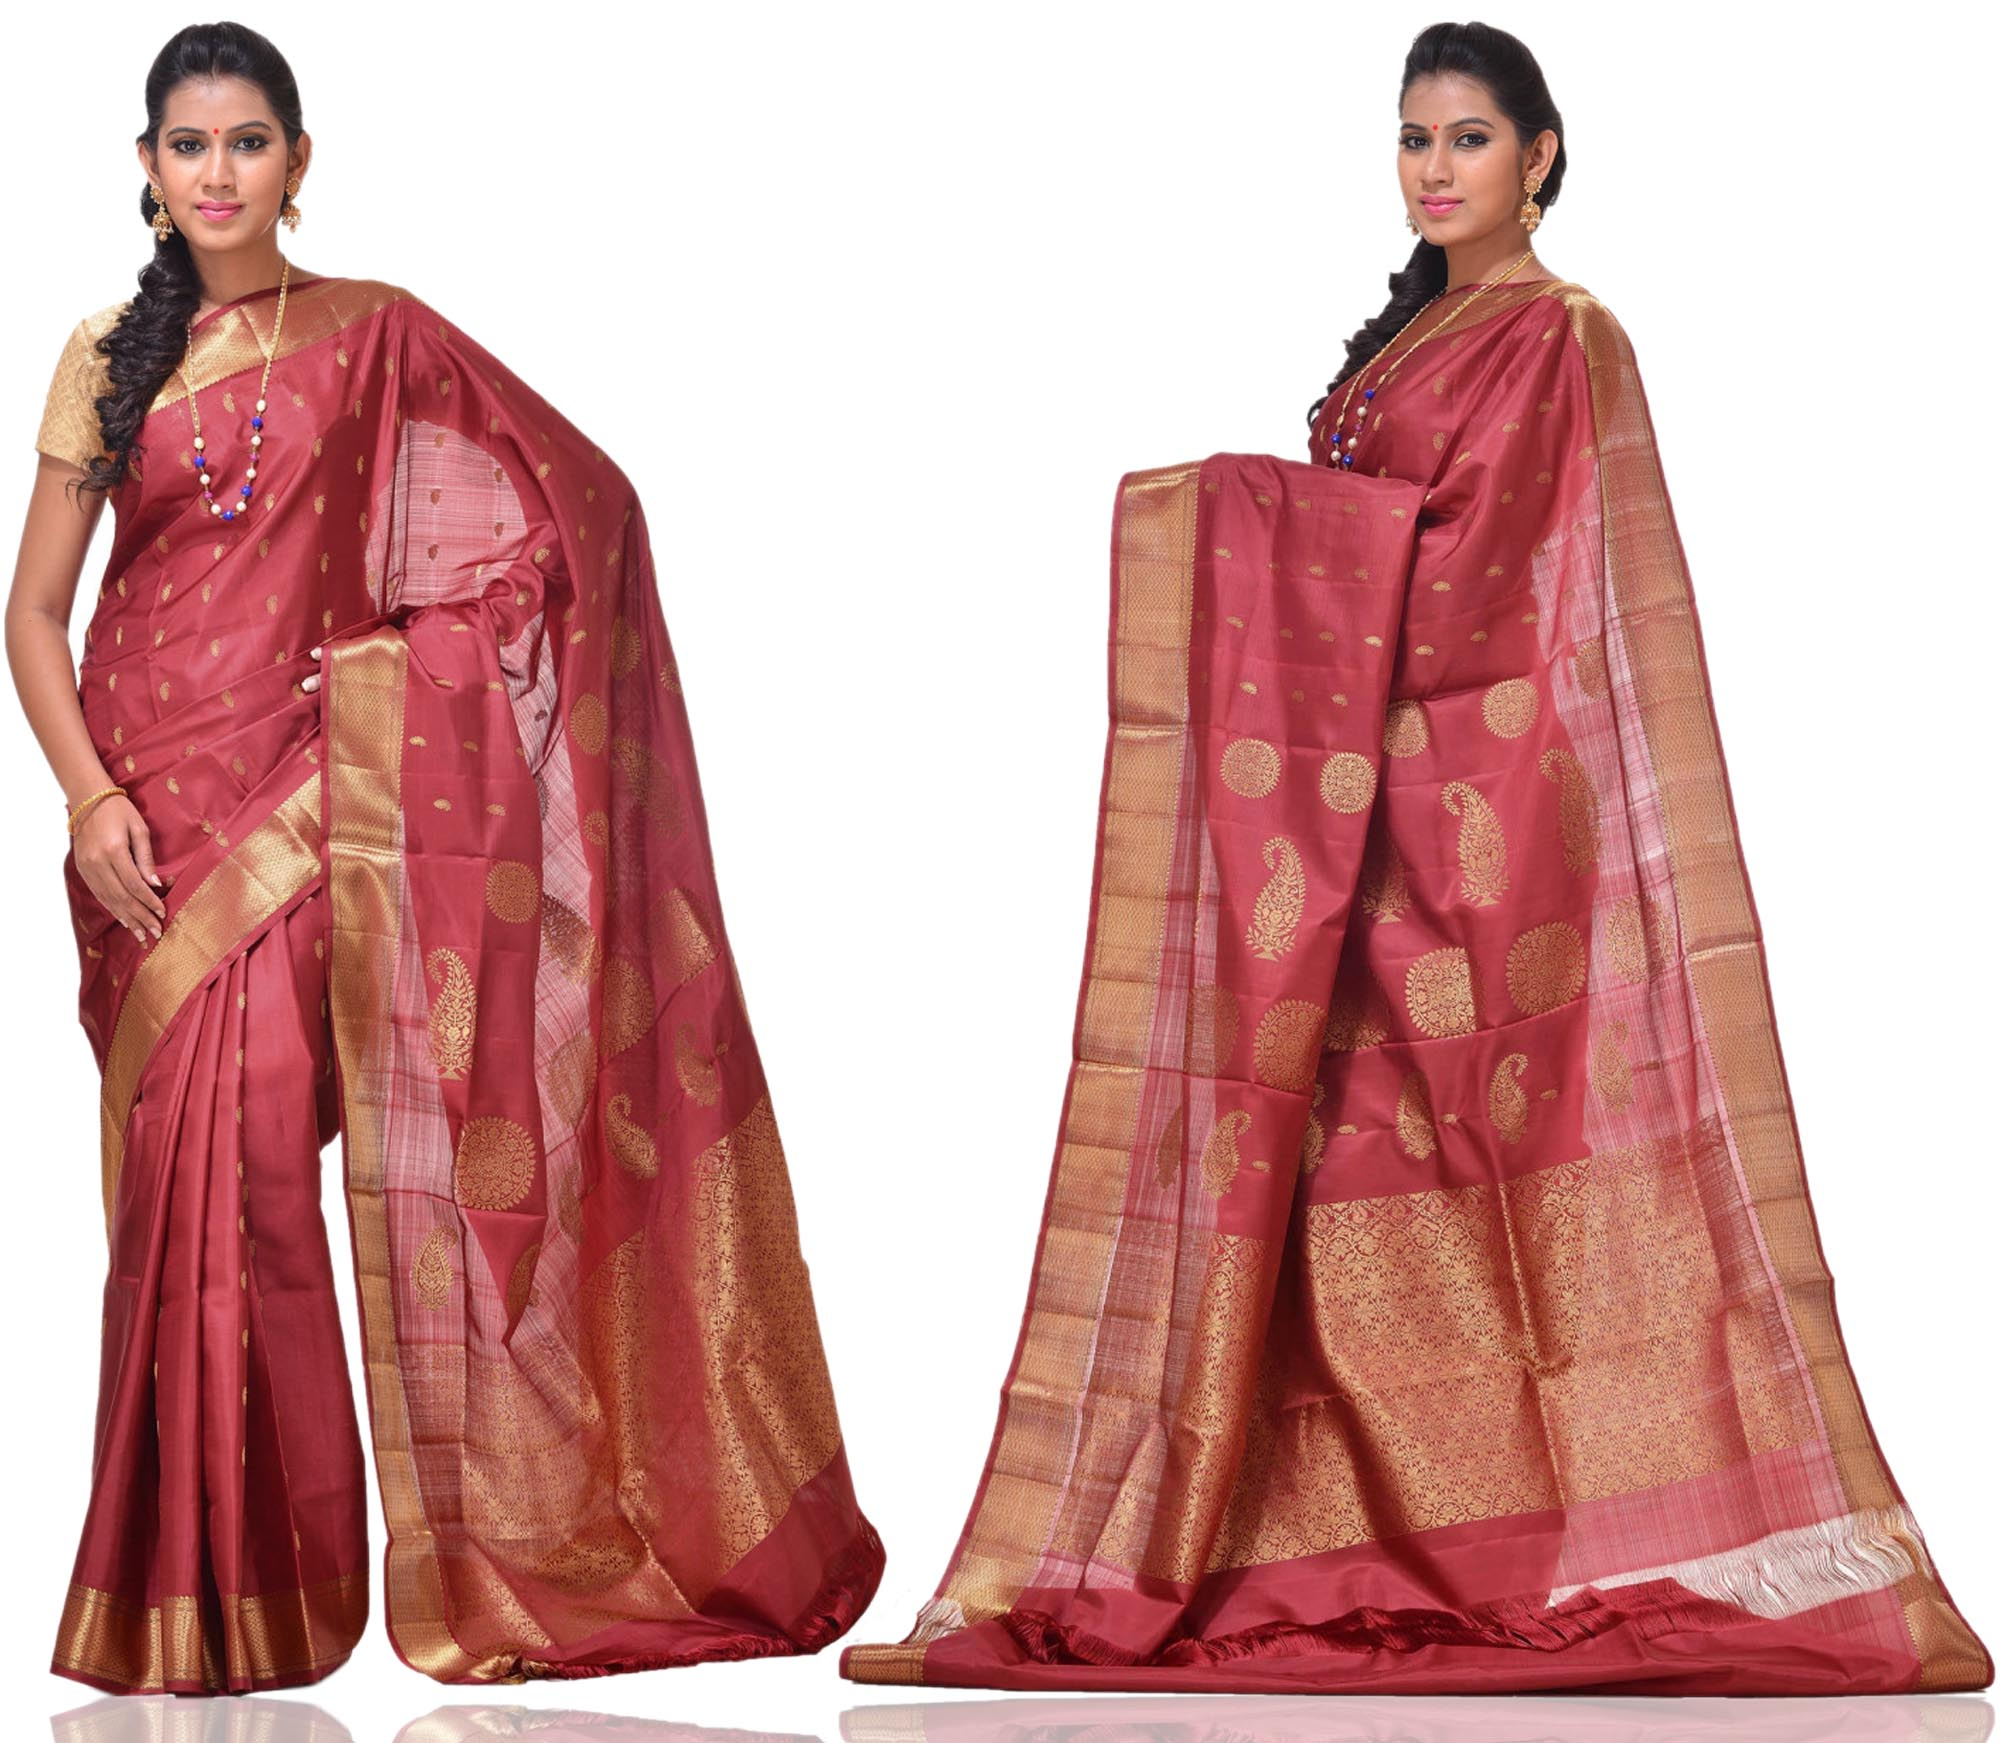 Price: - 14, 500/-   New Arrivals Arrived kanchipuram Sarees with New Design. These Saree Gives You a Traditional Look of South India. This Saree Worn at Wedding, Parties, Festivals, Functions. Sign up now for E-book you will be updated with latest collection of ethnic verities. For More Info Click on :- www.uppada.com    We manufacture of Uppada sarees, Paithani sarees, Banarasi sarees, Venkatagiri Sarees, Gadwal Sarees, Khadi sarees, Hand Painted Kalamkari Dupatta, Ikkat sarees, Kanchipuram Sarees, Dupattas, Stoles etc. For more info us at 040 64640303, 441905005.  Buy online: - uppada.com  - by Paithani, Hyderabad